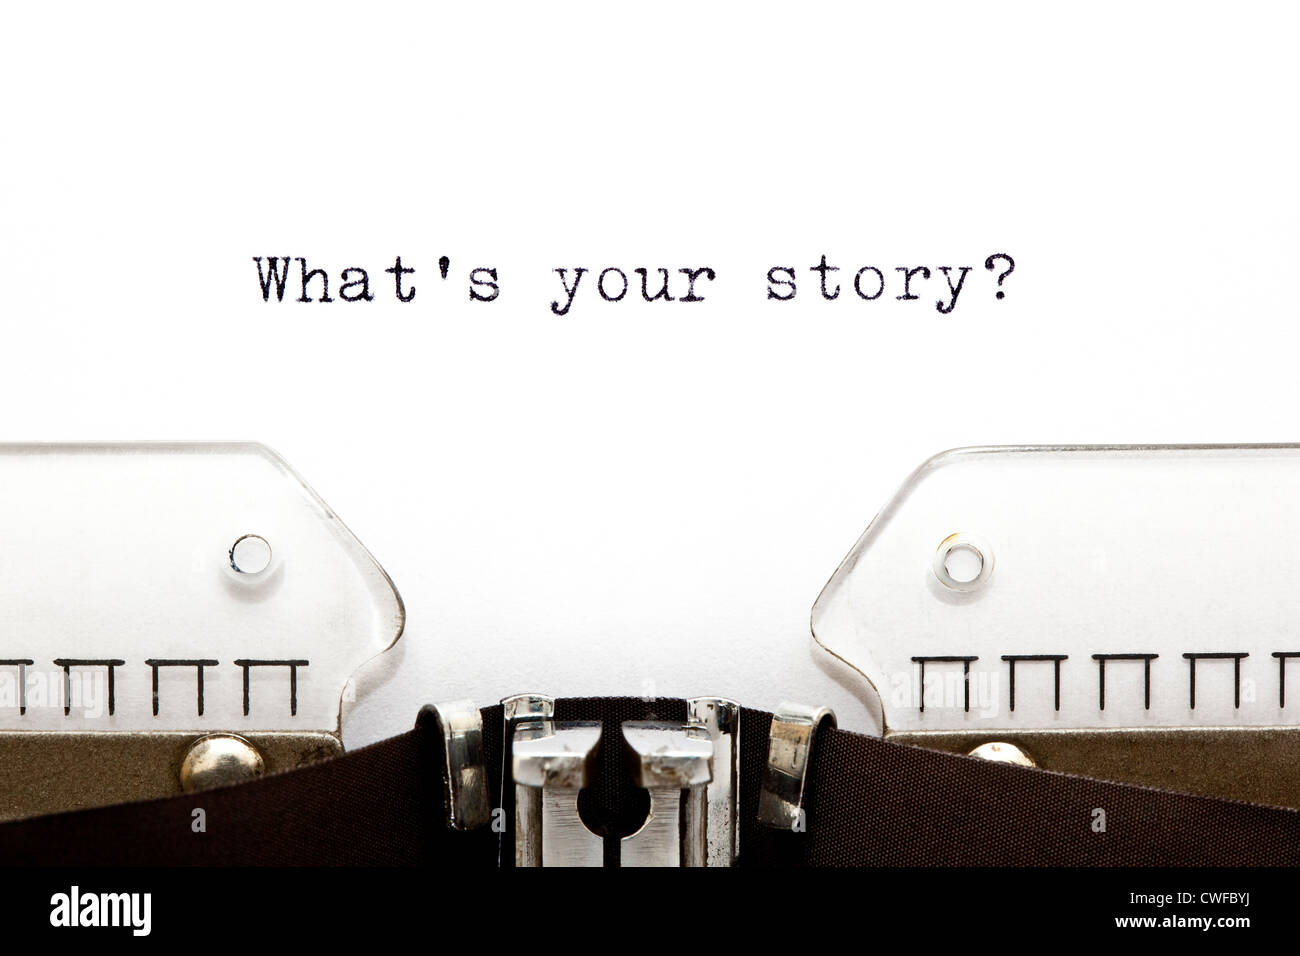 Concept image with What is Your Story printed on an old typewriter - Stock Image